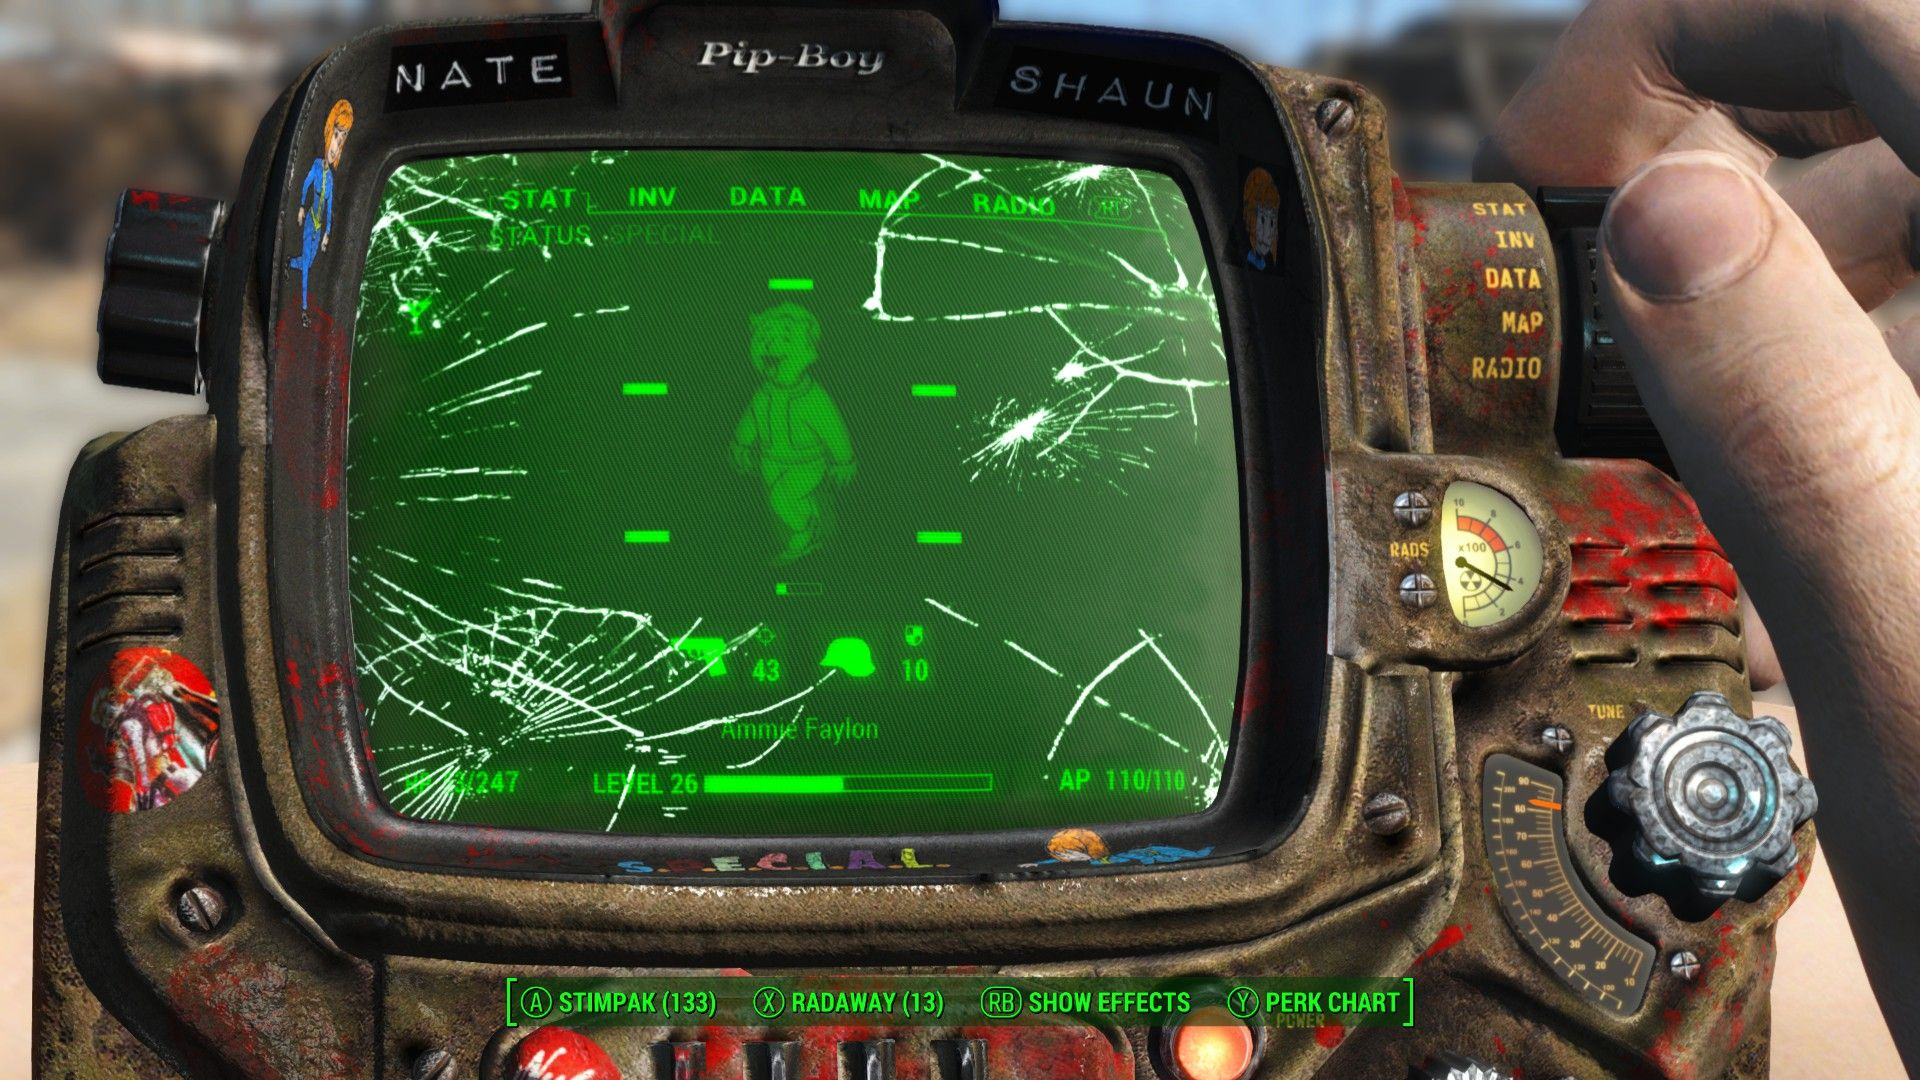 Pip Boy Free Wallpaper and Background